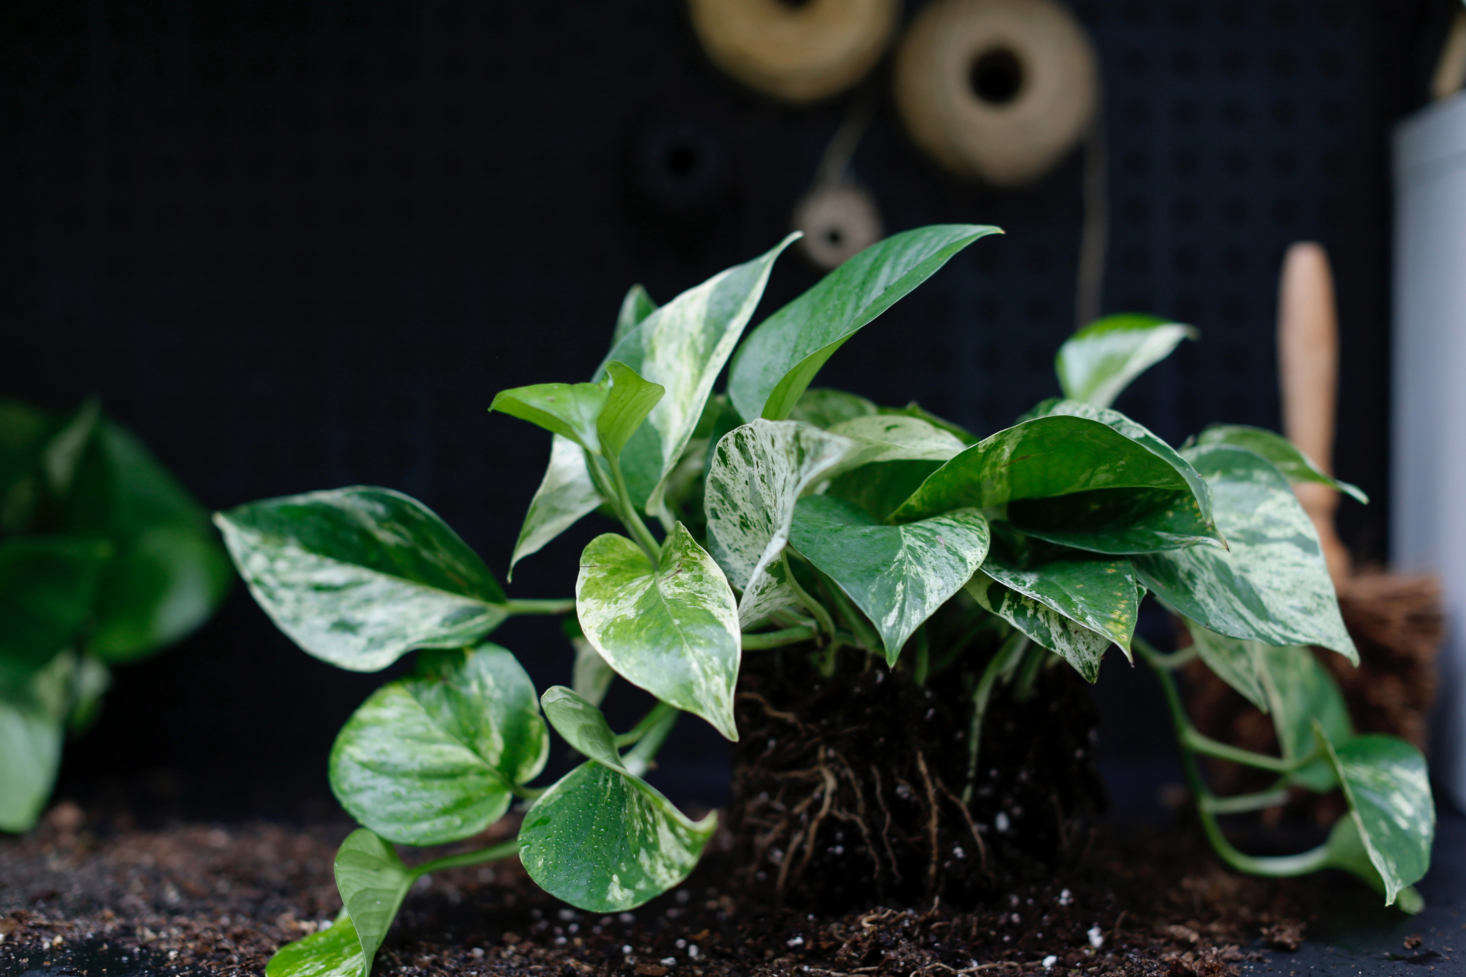 Variegation is a mutation that can be genetic or random (if only a few variegated leaves appear on an otherwise green plant, it may revert over time to a plant that has solid green foliage).